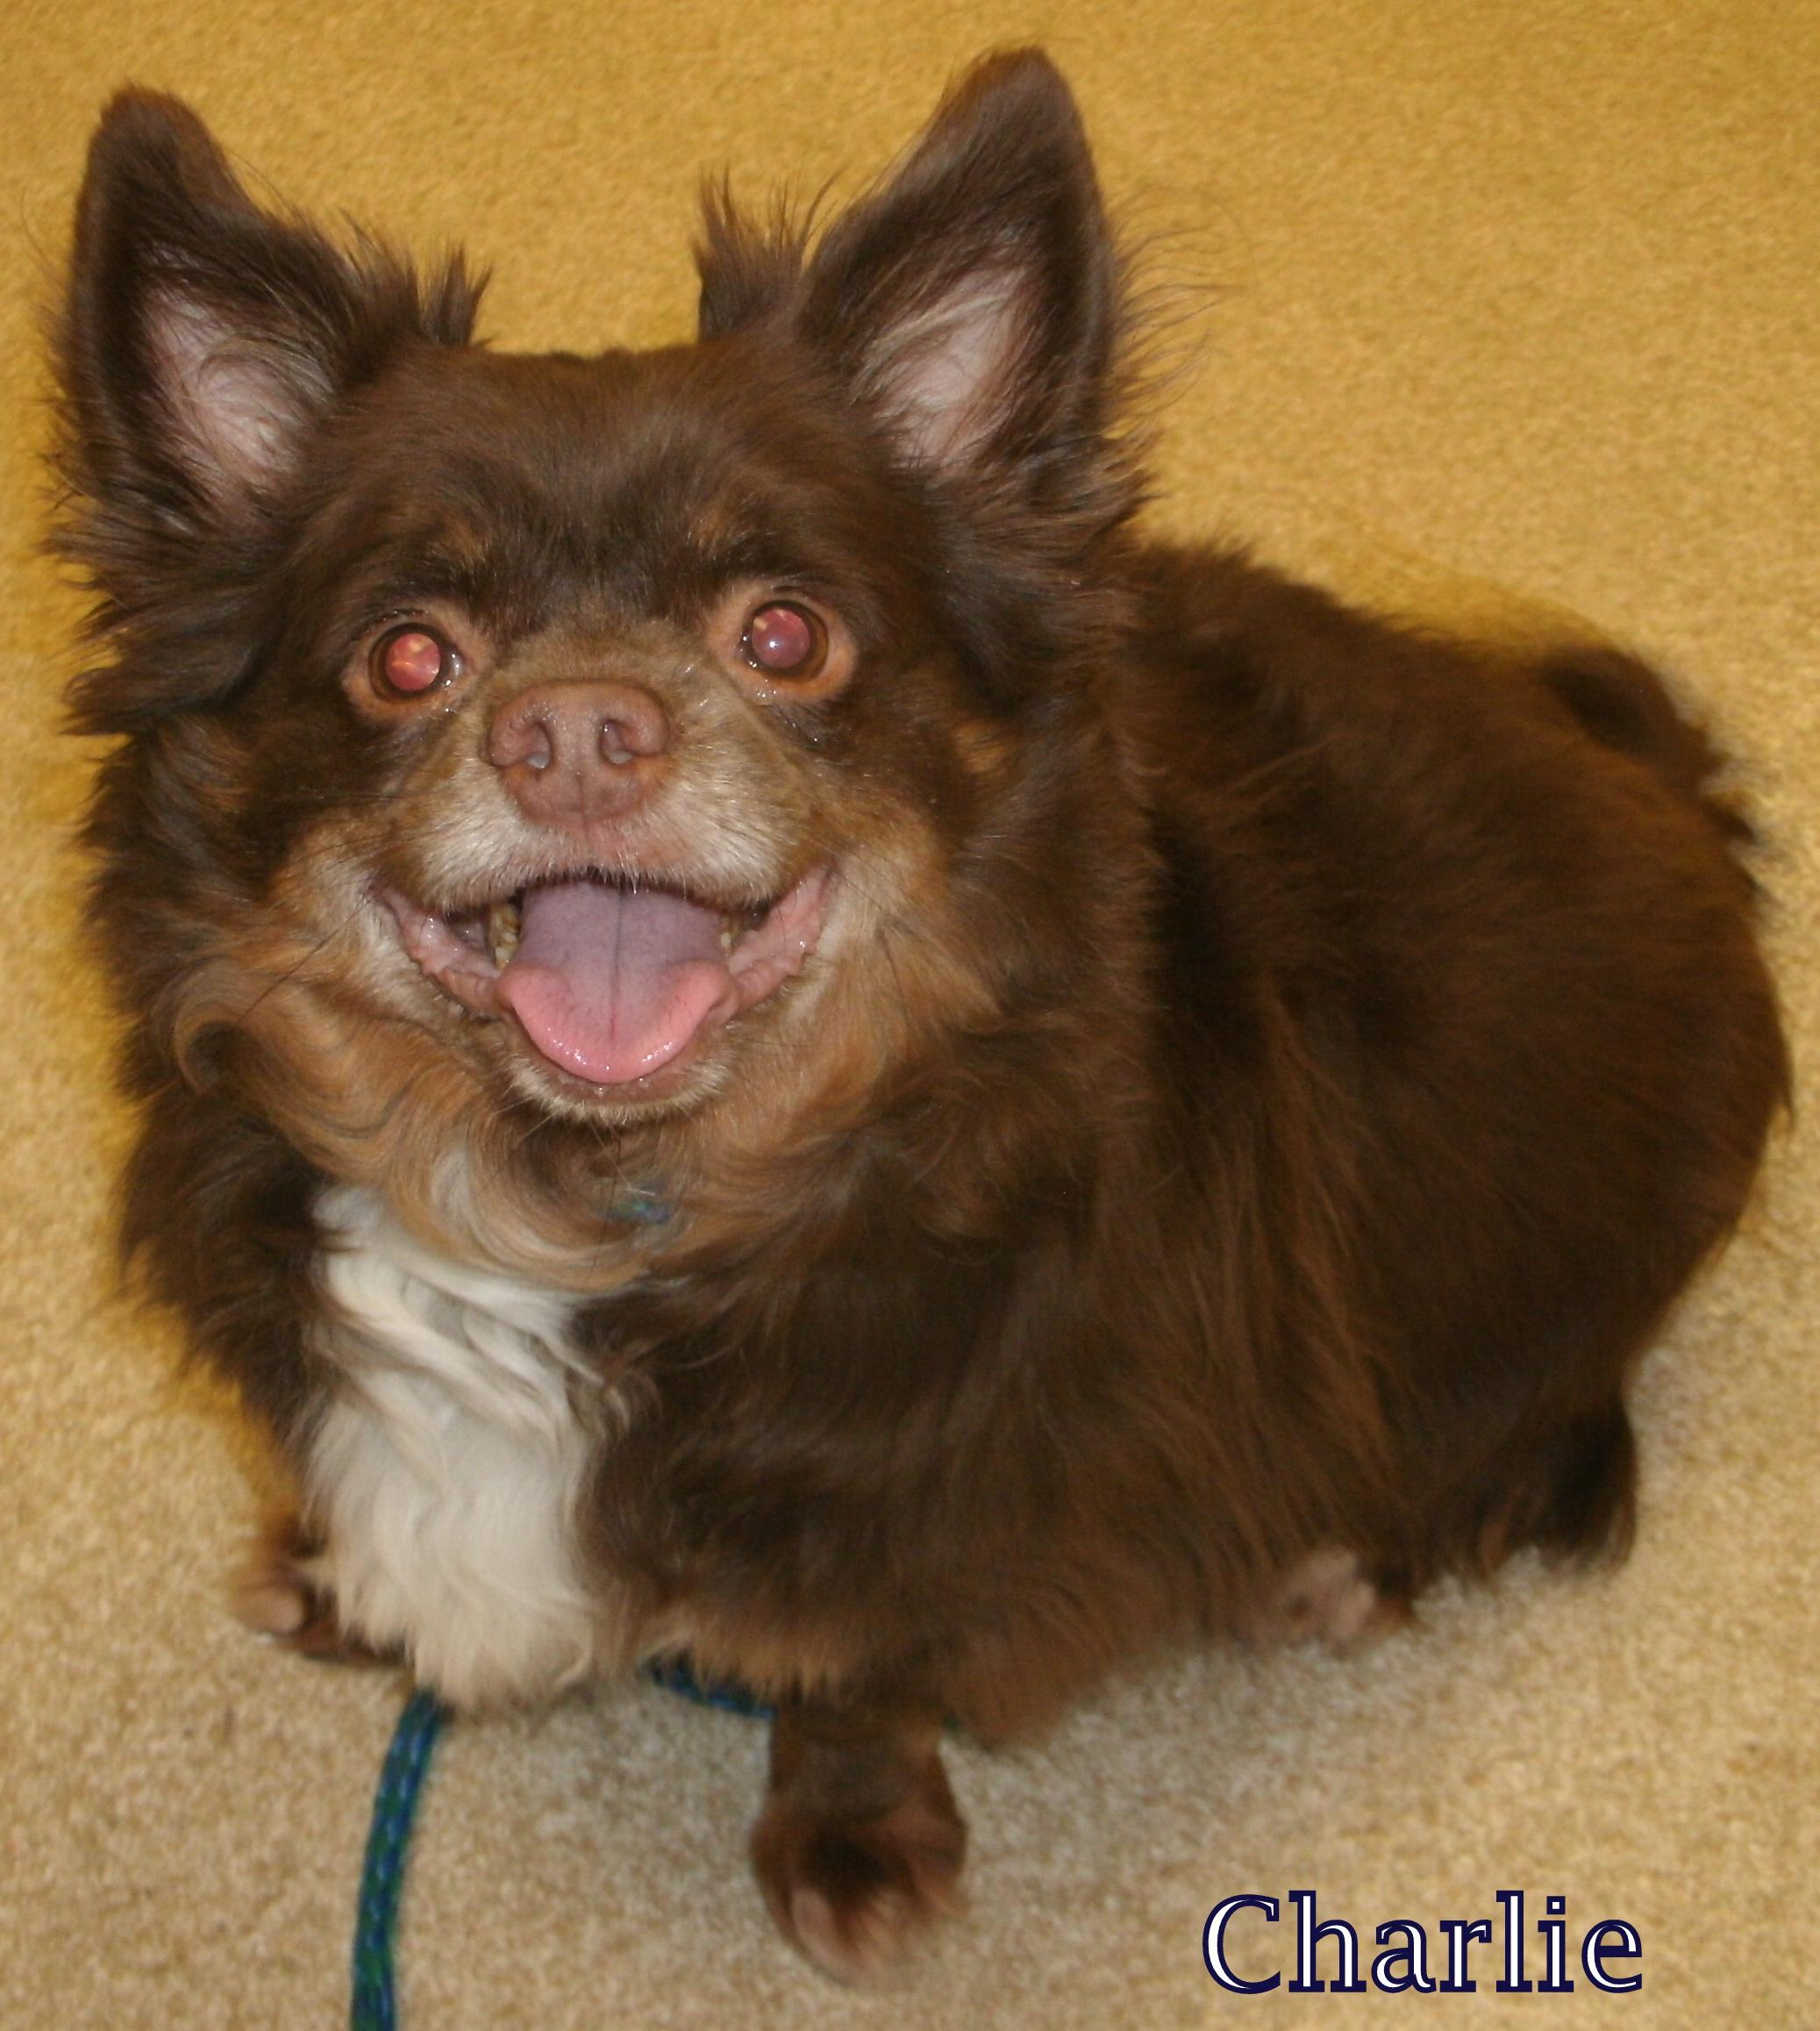 Charlie-has been ADOPTED!!!